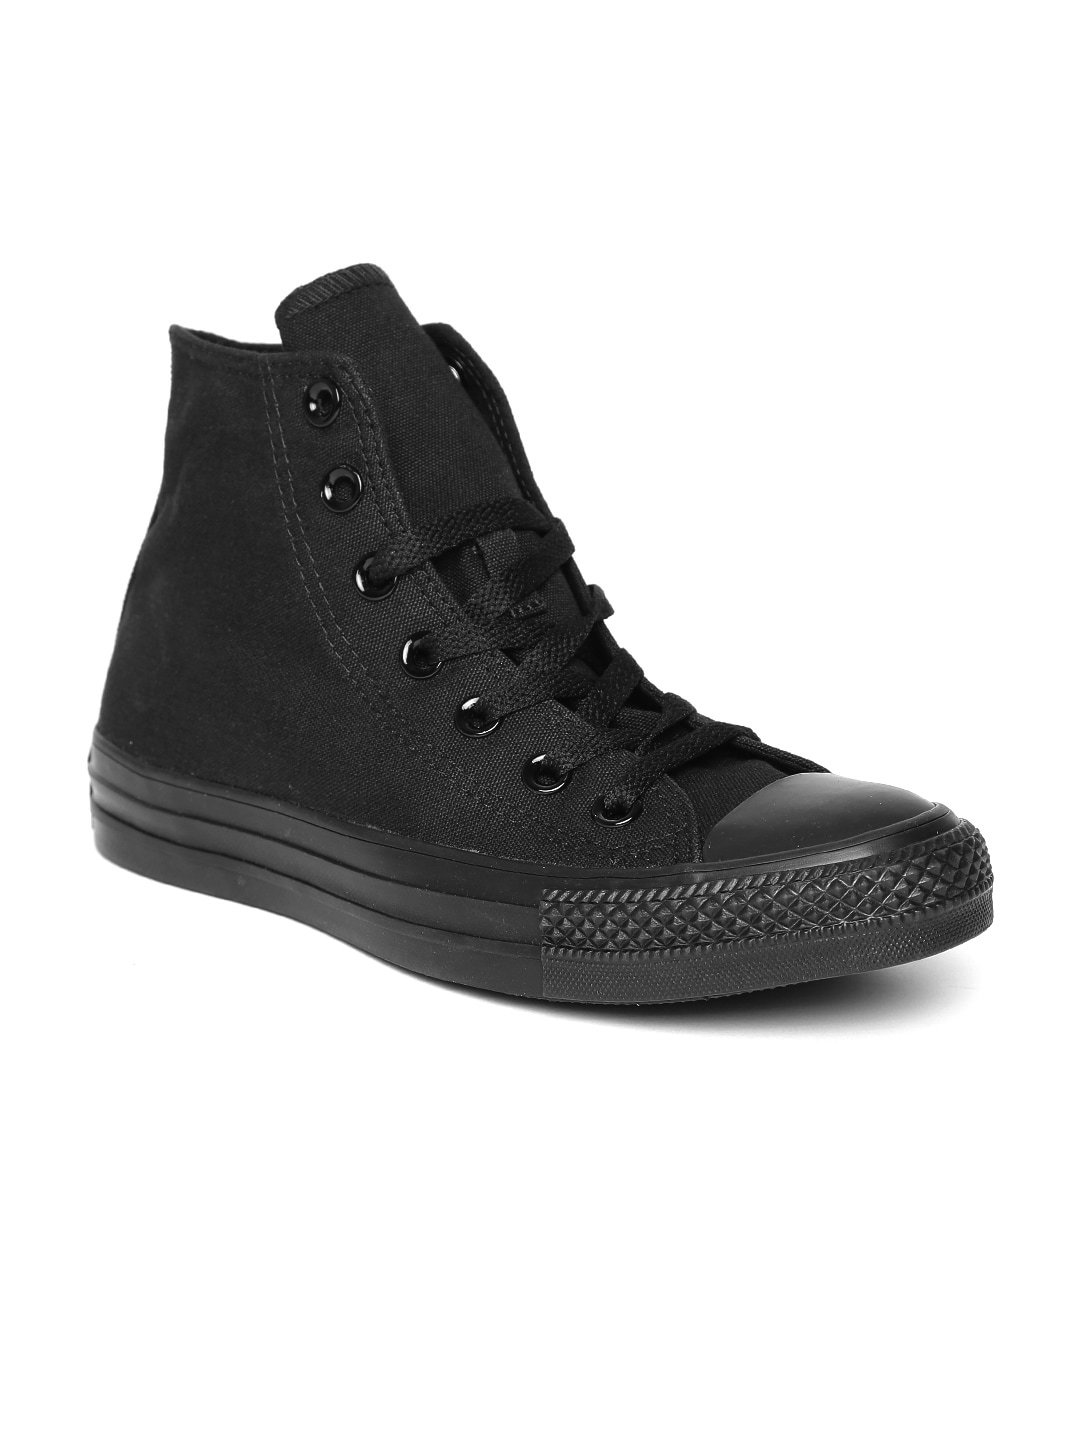 547642e358cb Converse Shoes - Buy Converse Canvas Shoes   Sneakers Online